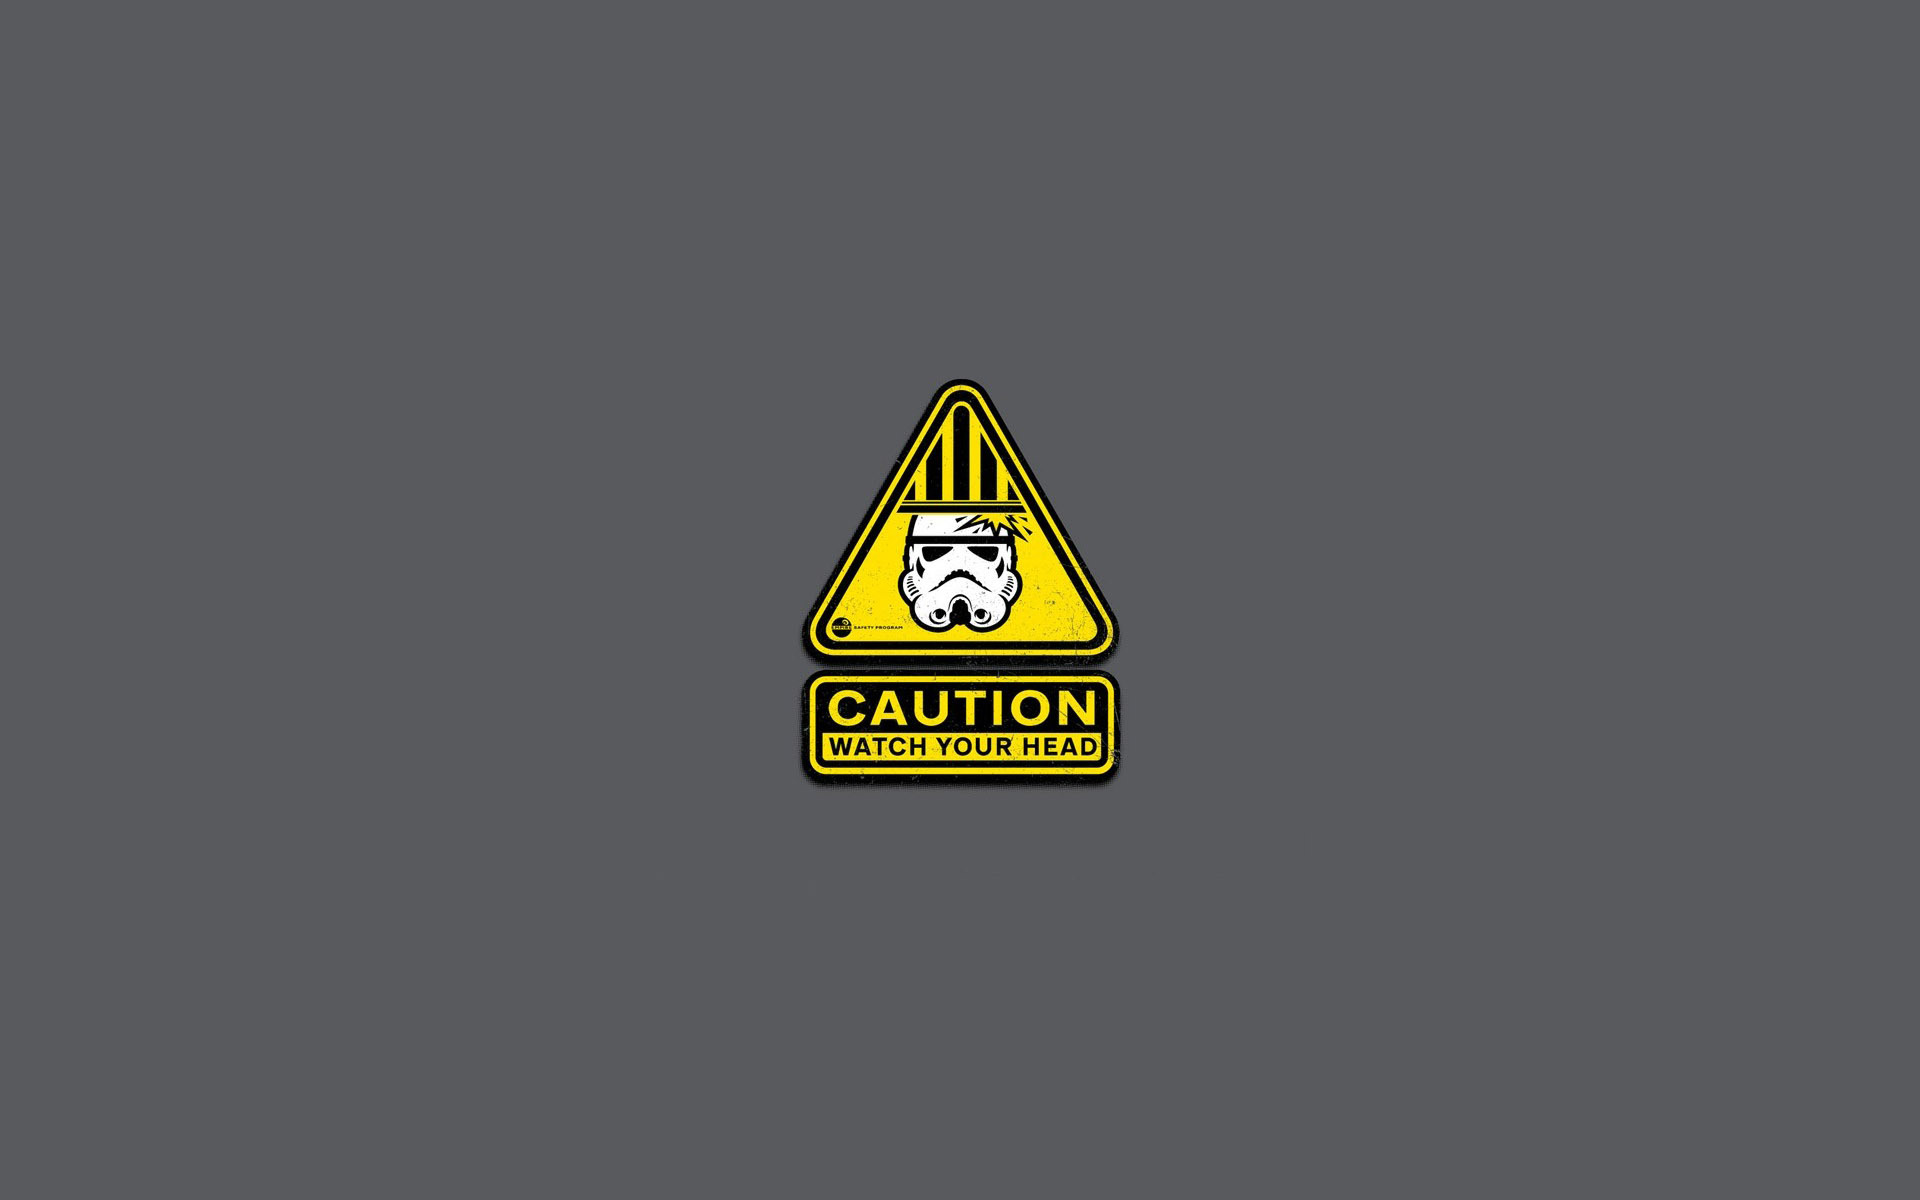 Caution Sign Wallpaper Wallpapersafari